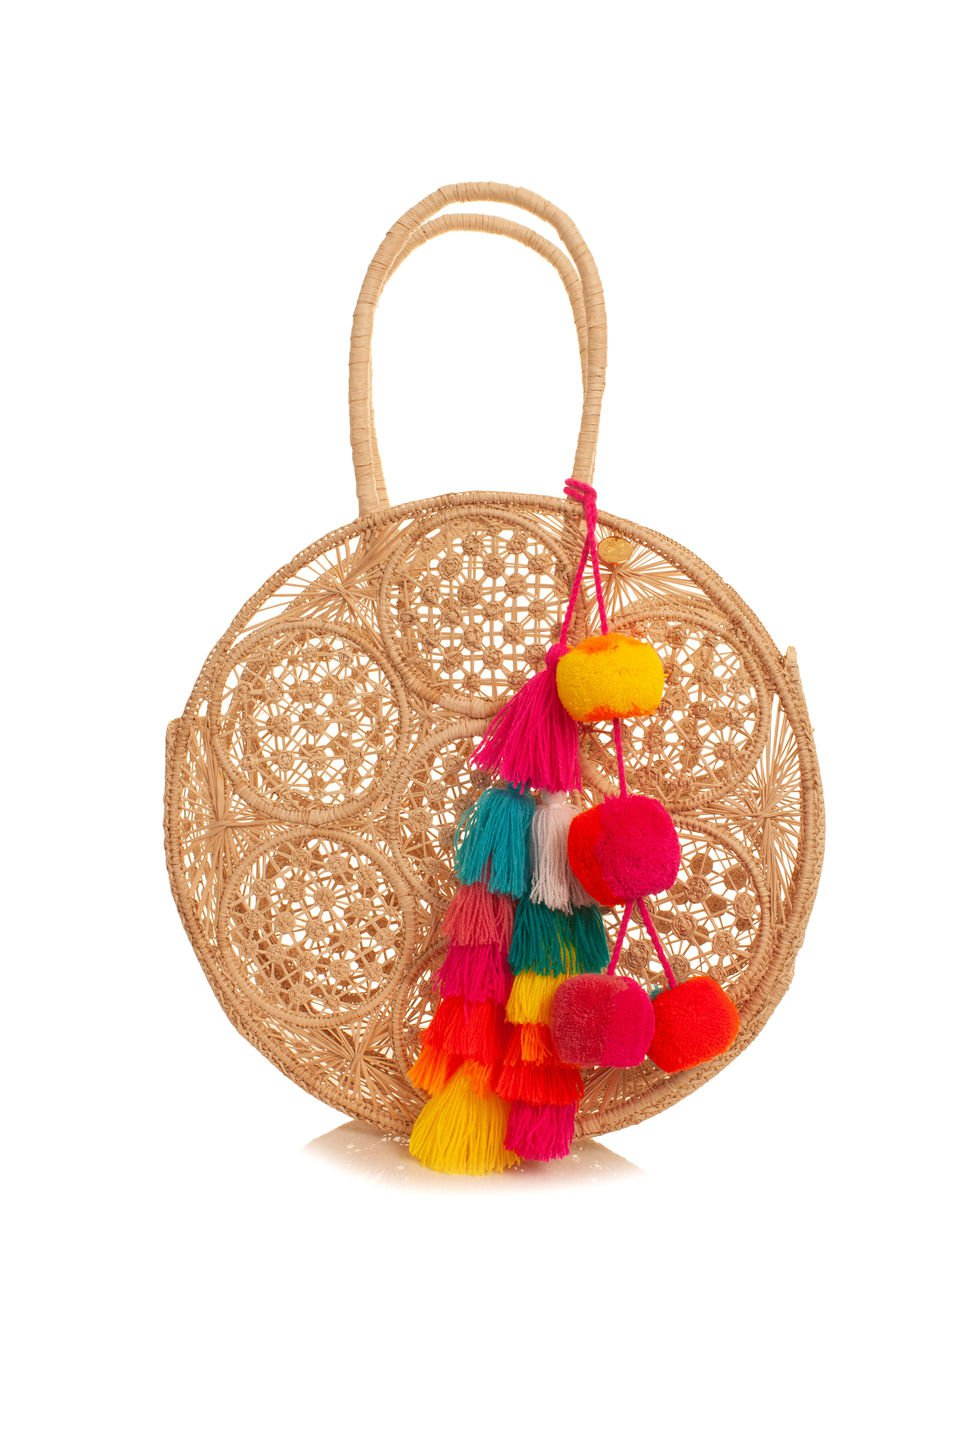 Round straw bag with multicolored prom poms